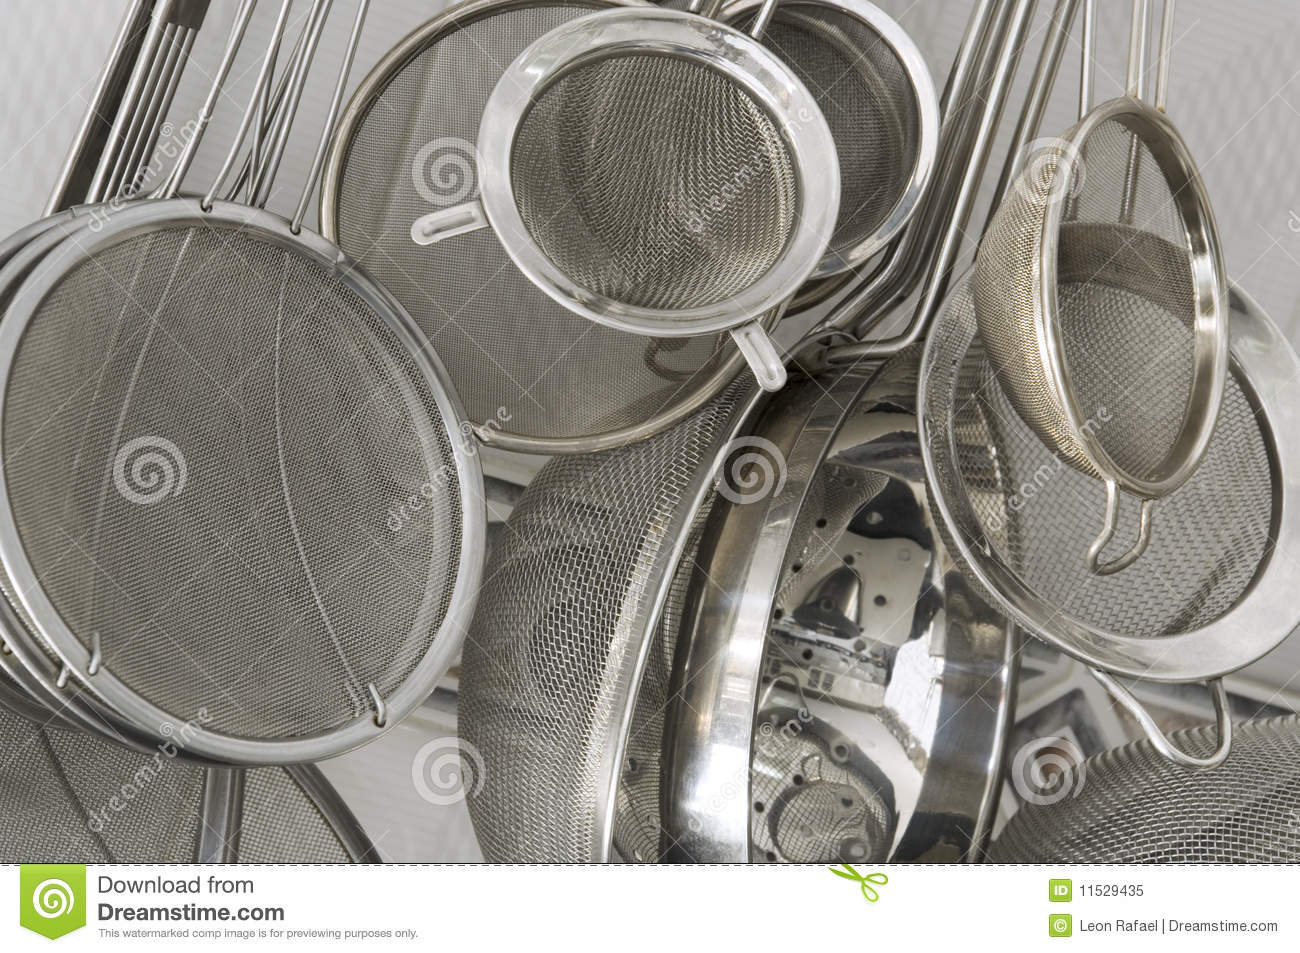 Composition Of 4 Kitchen Utensils : Kitchen Strainers Close Up Royalty Free Stock Photo - Image: 11529435